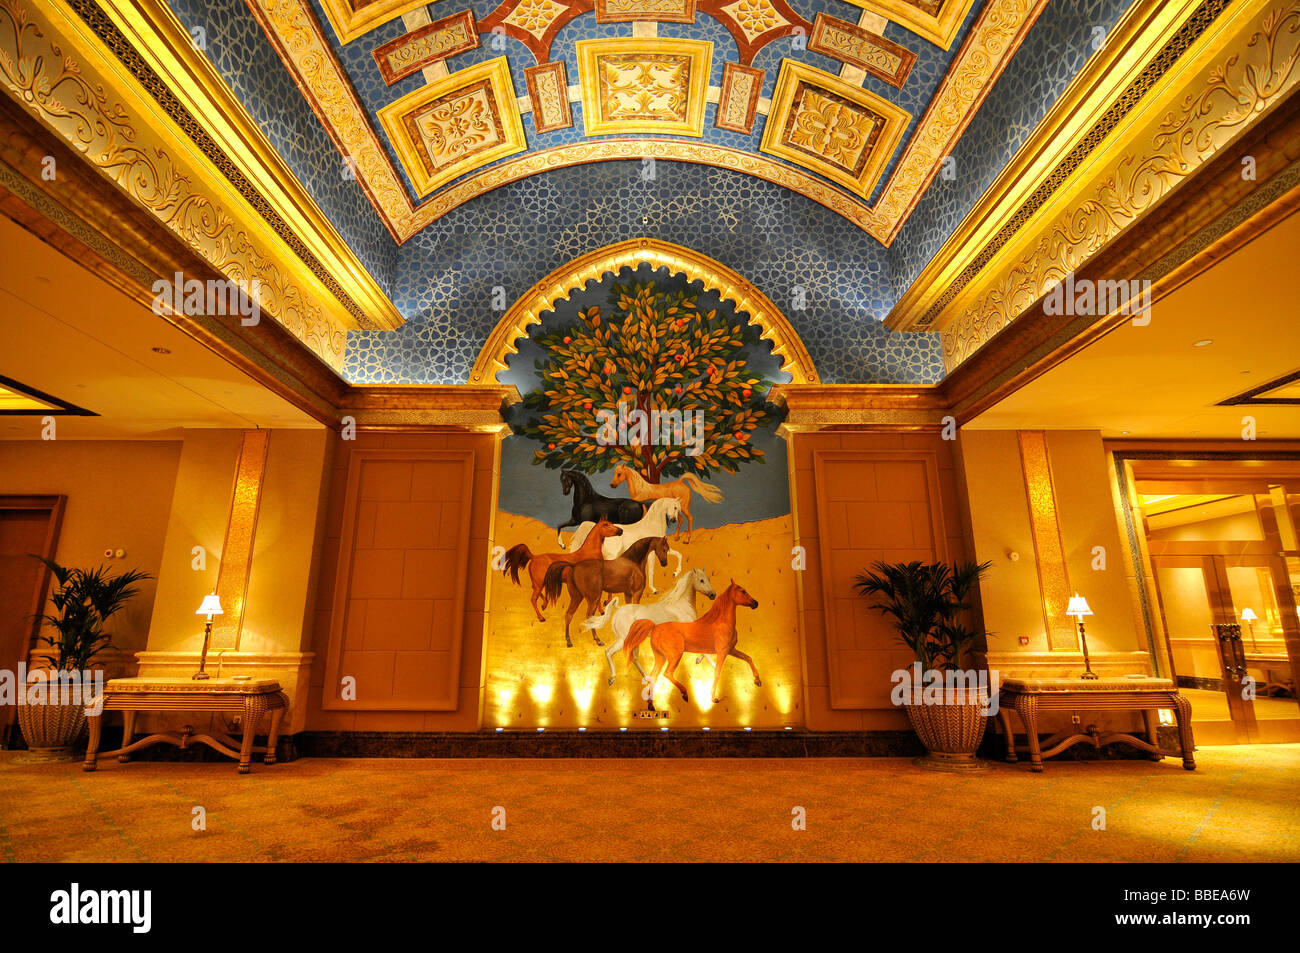 Blue Room of the Emirates Palace Hotel with a painting of the seven horses, which represent the United Arab Emirates, Stock Photo